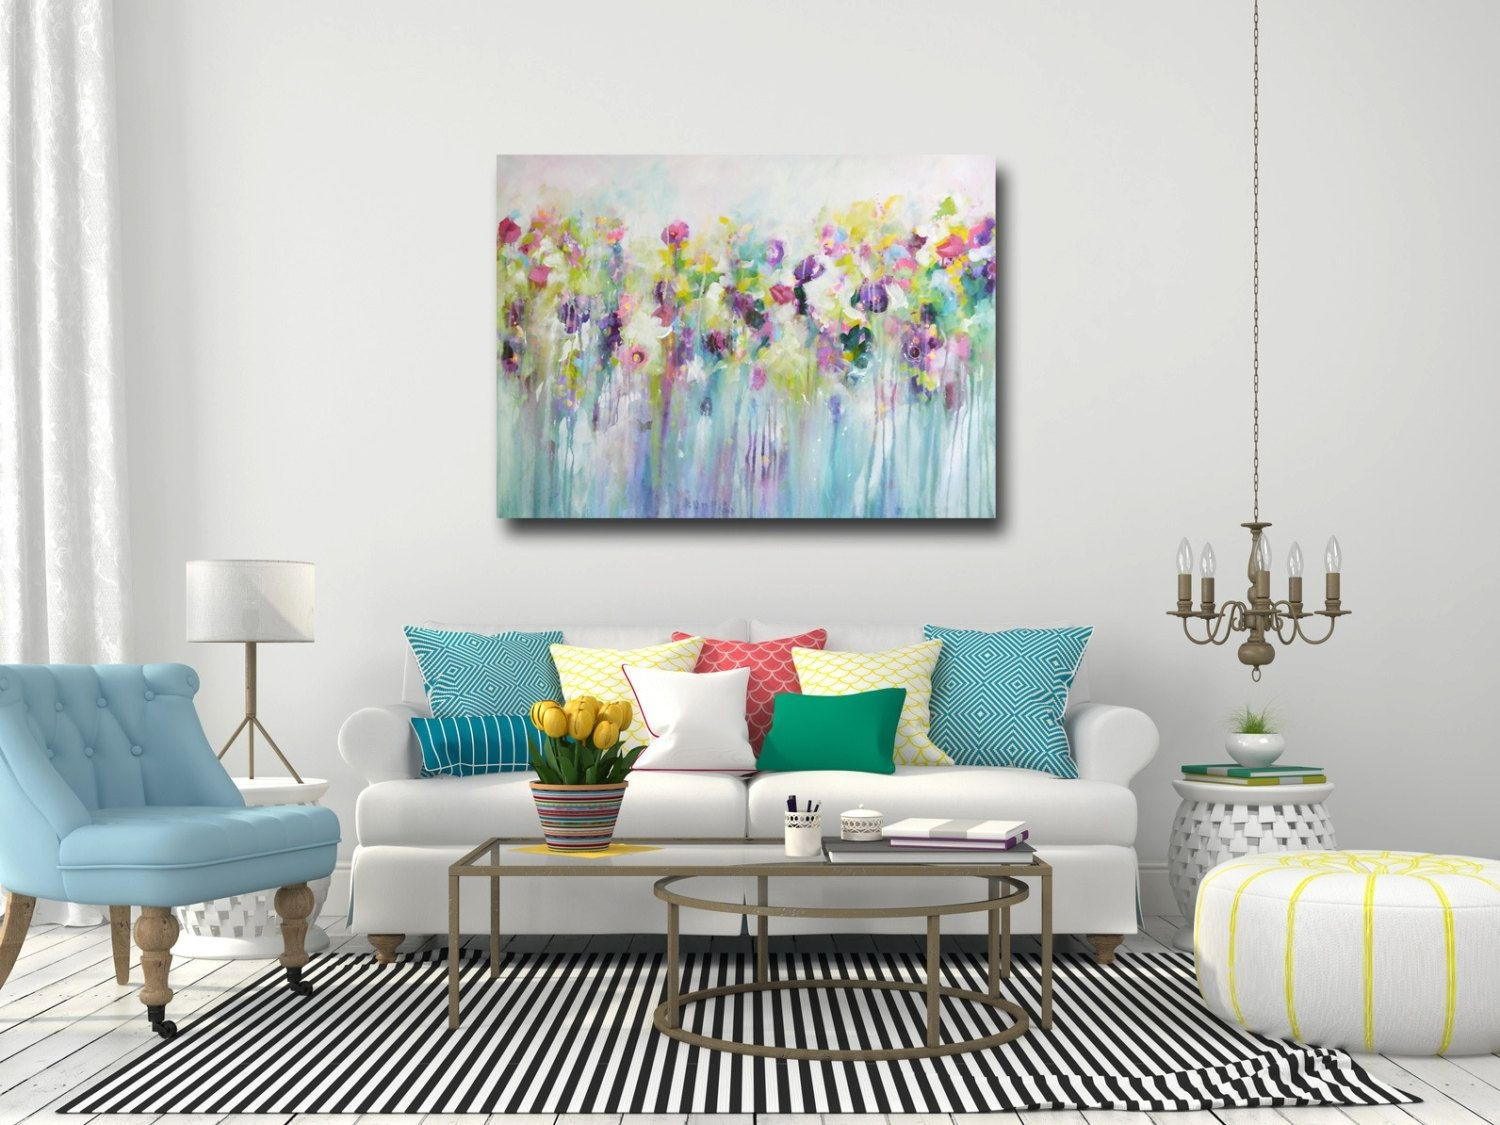 Large Wall Art, Canvas Art, Abstract Floral Canvas Print, Giclee Throughout 2017 Abstract Floral Canvas Wall Art (View 6 of 20)